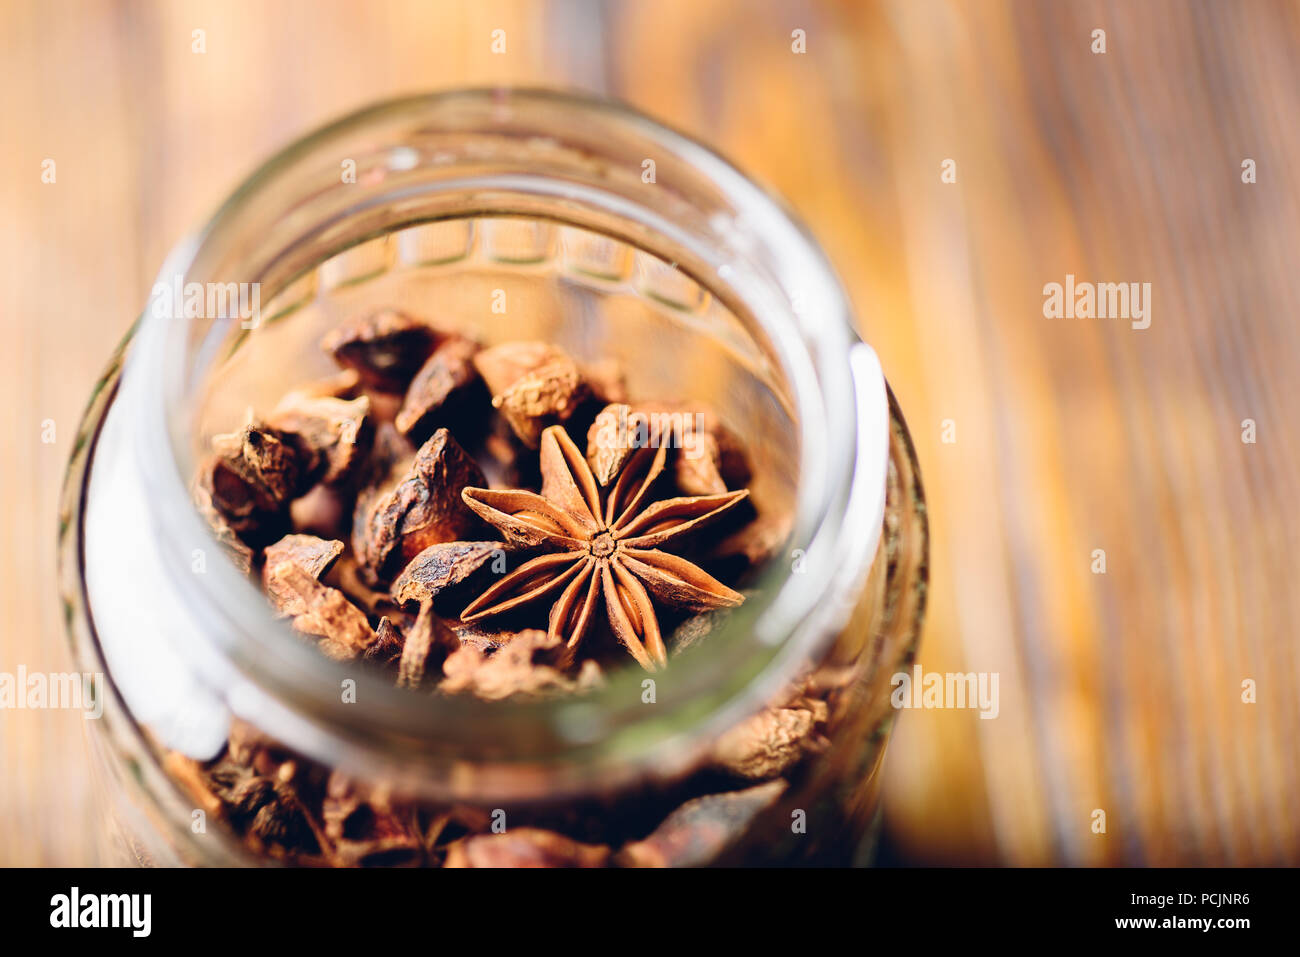 Jar of Star Anise. High Angle View through the Bottleneck. - Stock Image